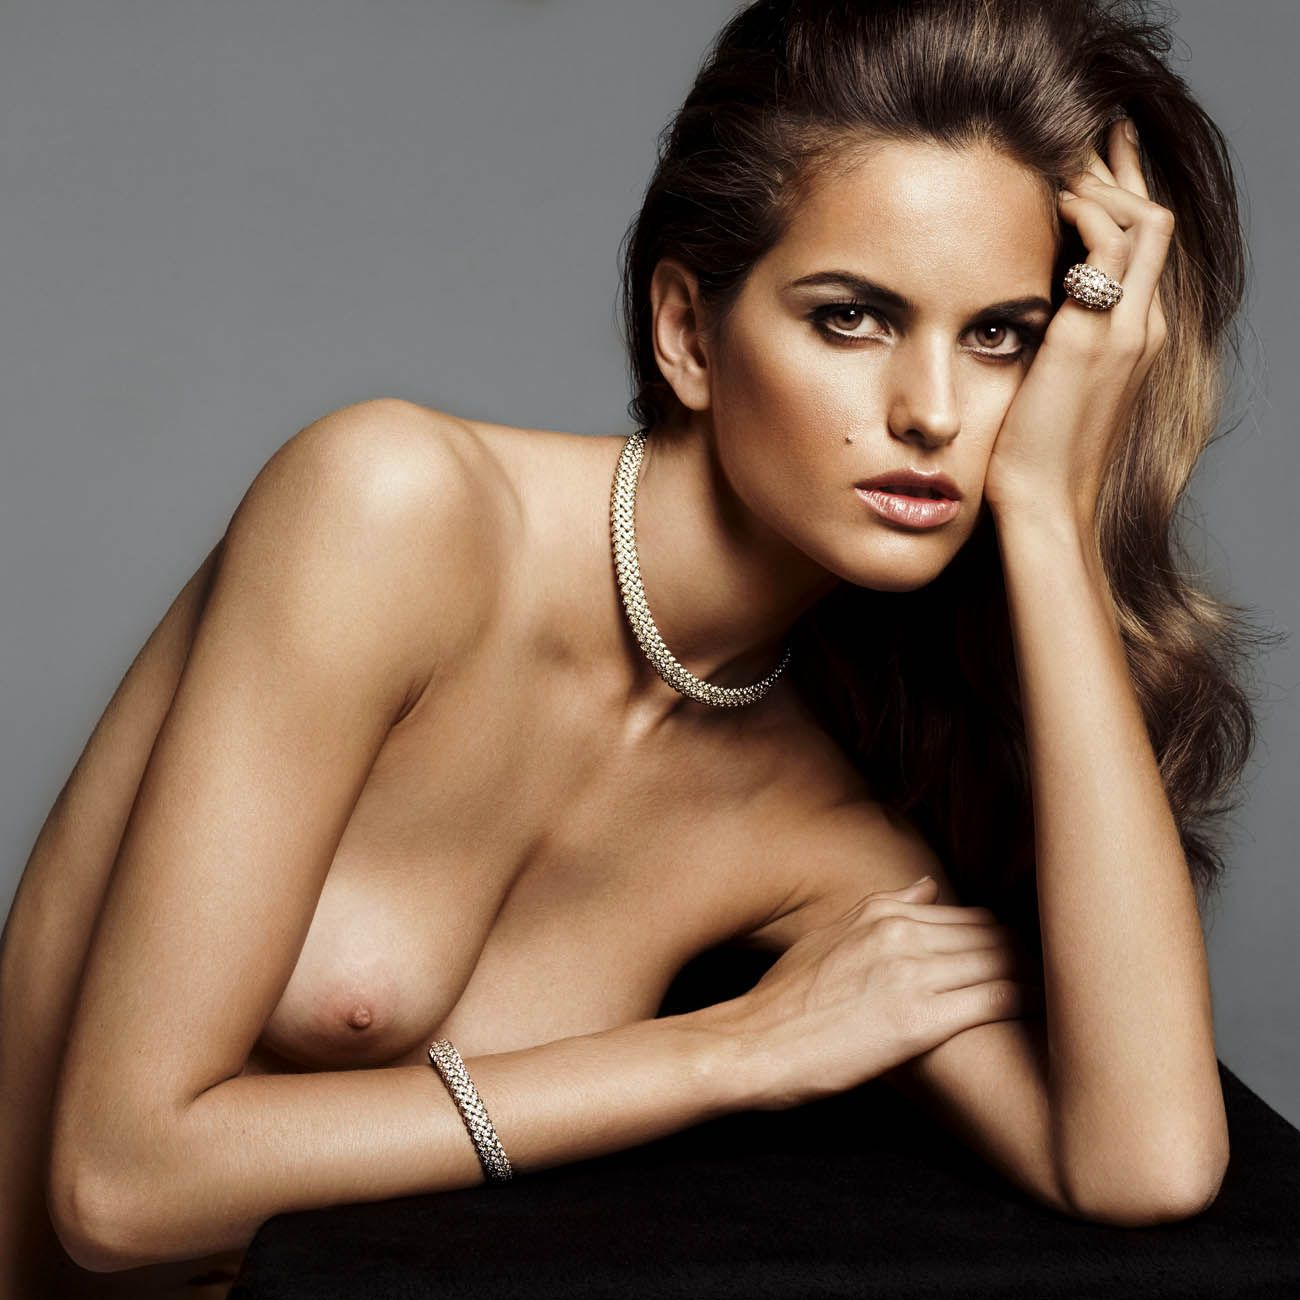 Izabel goulart nude, sexy, the fappening, uncensored